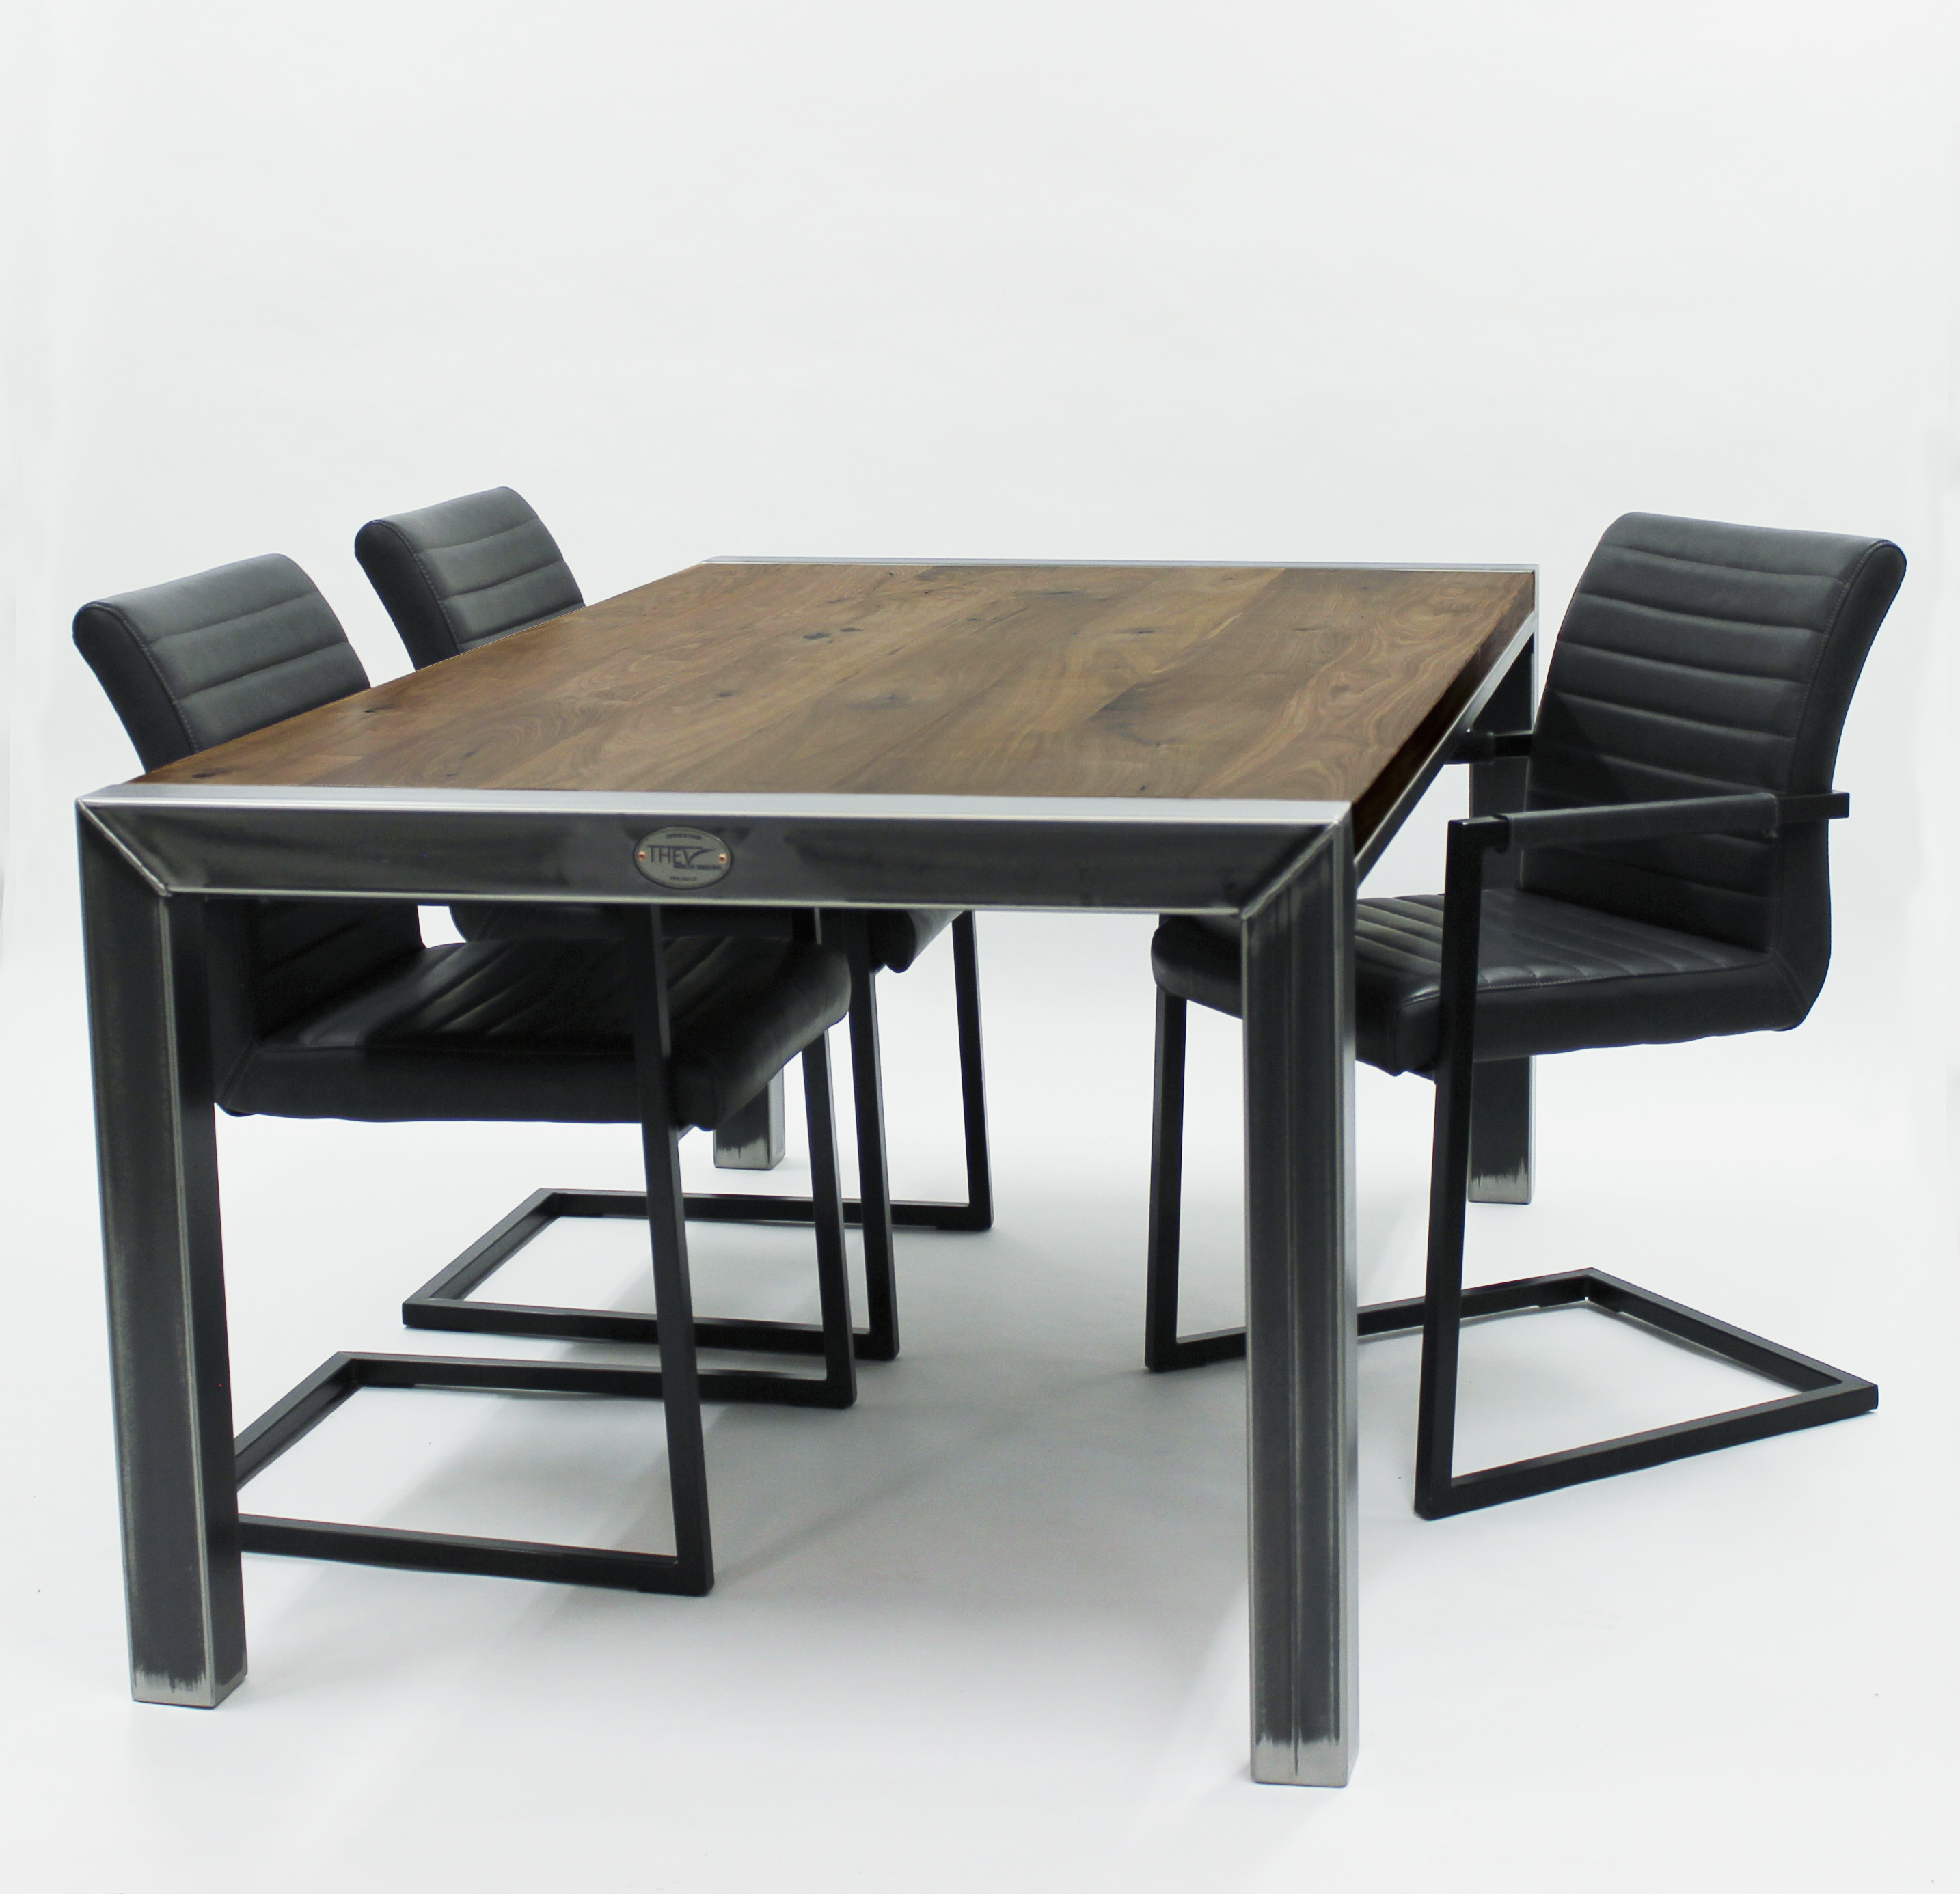 Table industriel Clasik THEV